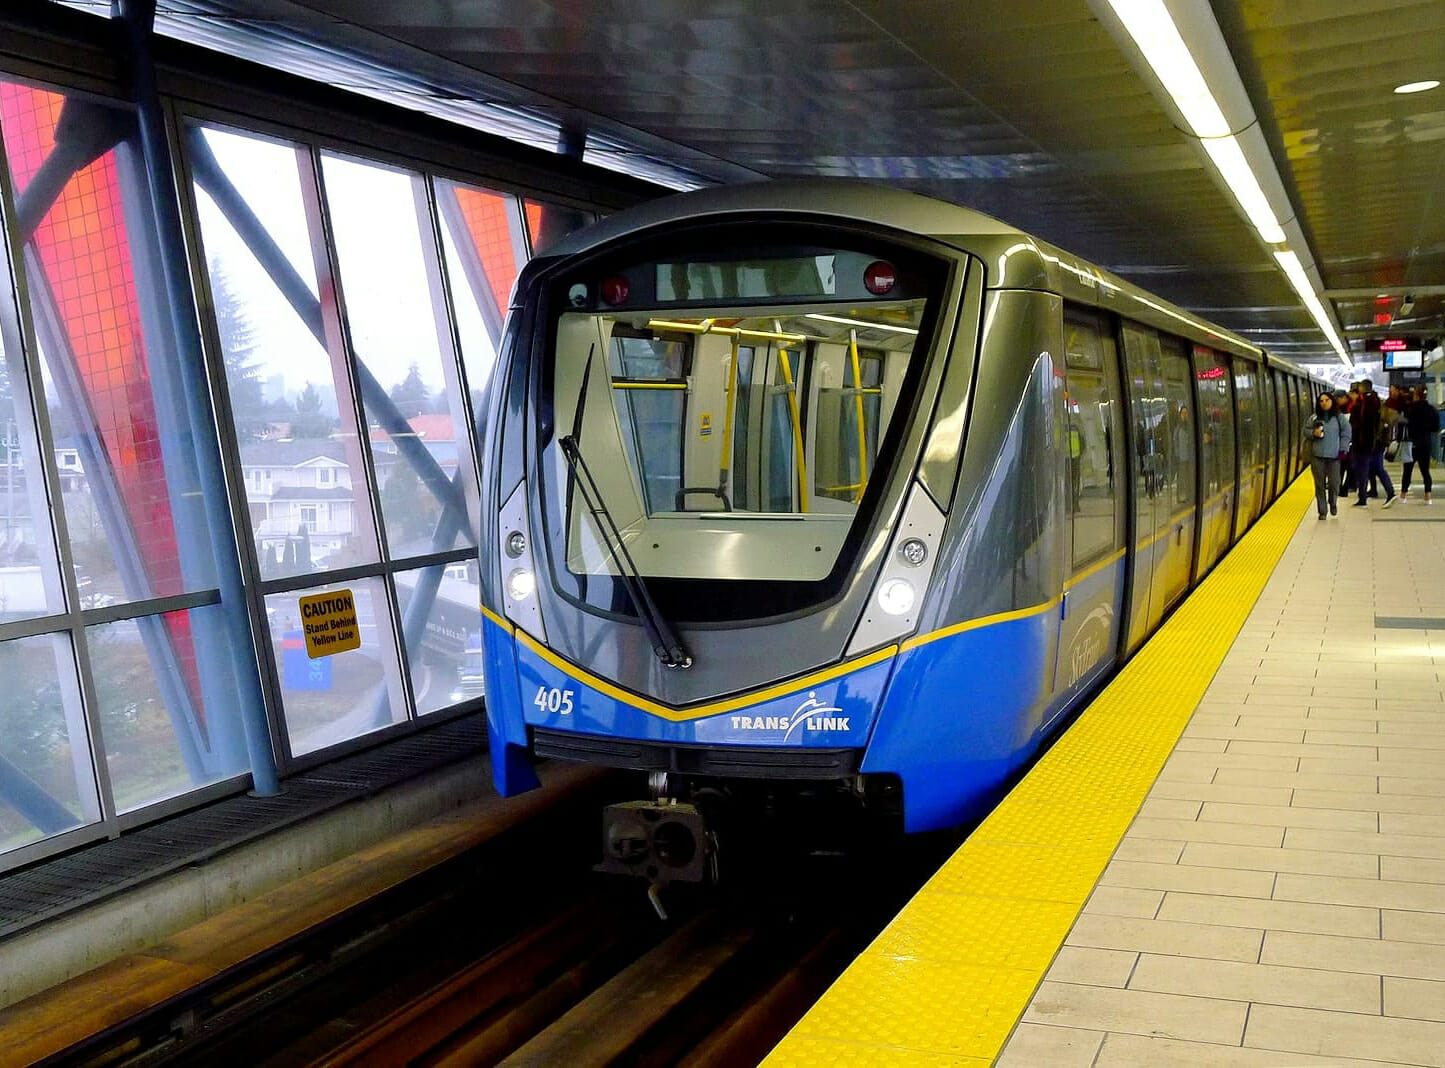 City of Surrey Skytrain